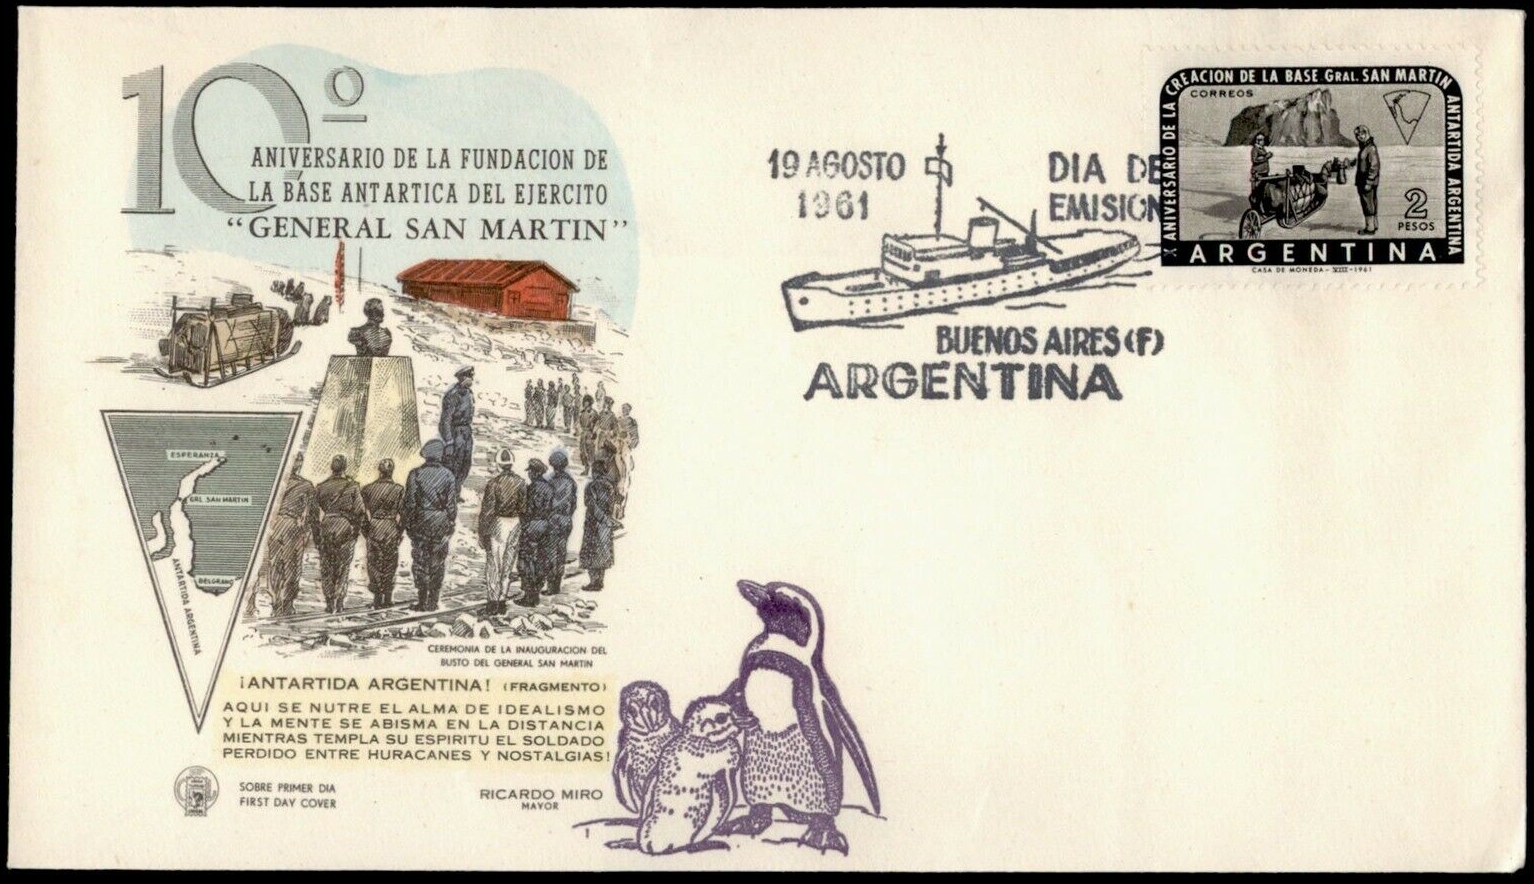 Argentina - Scott #731 (1961) first day cover - 10th anniversary of General San Martin Army Base in Antarctica